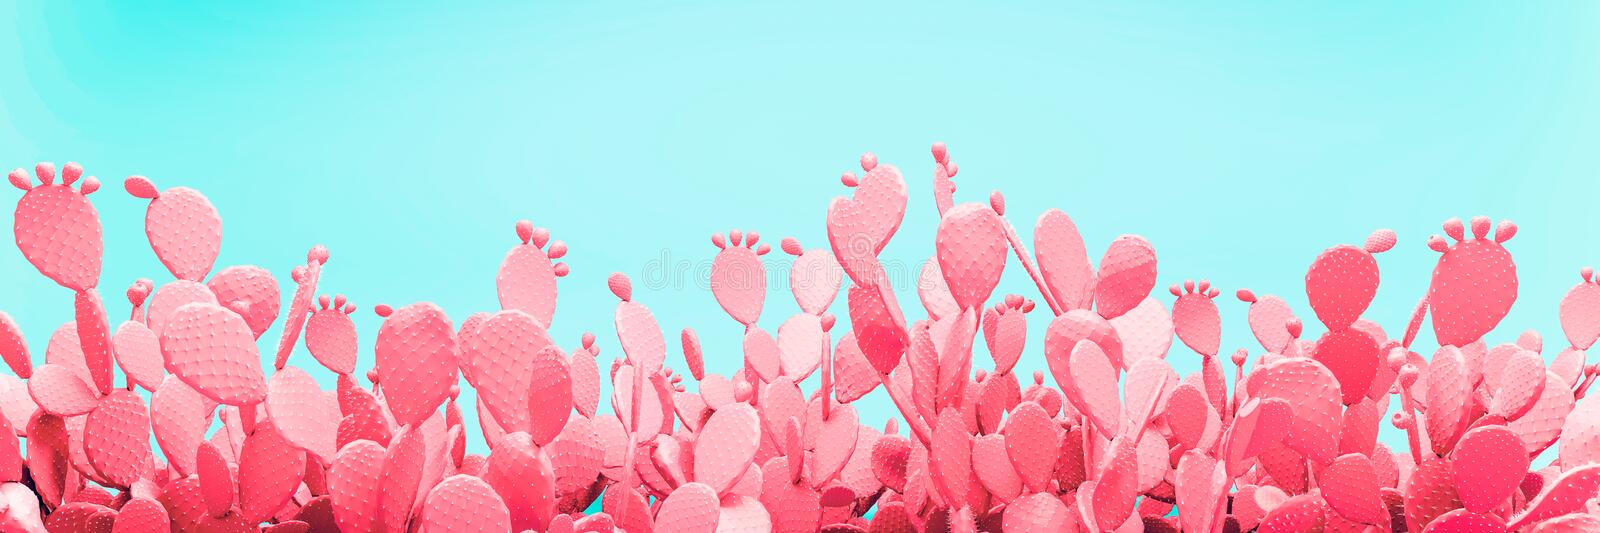 Unusual Blue Cactus Field On Pink Background royalty free stock photo